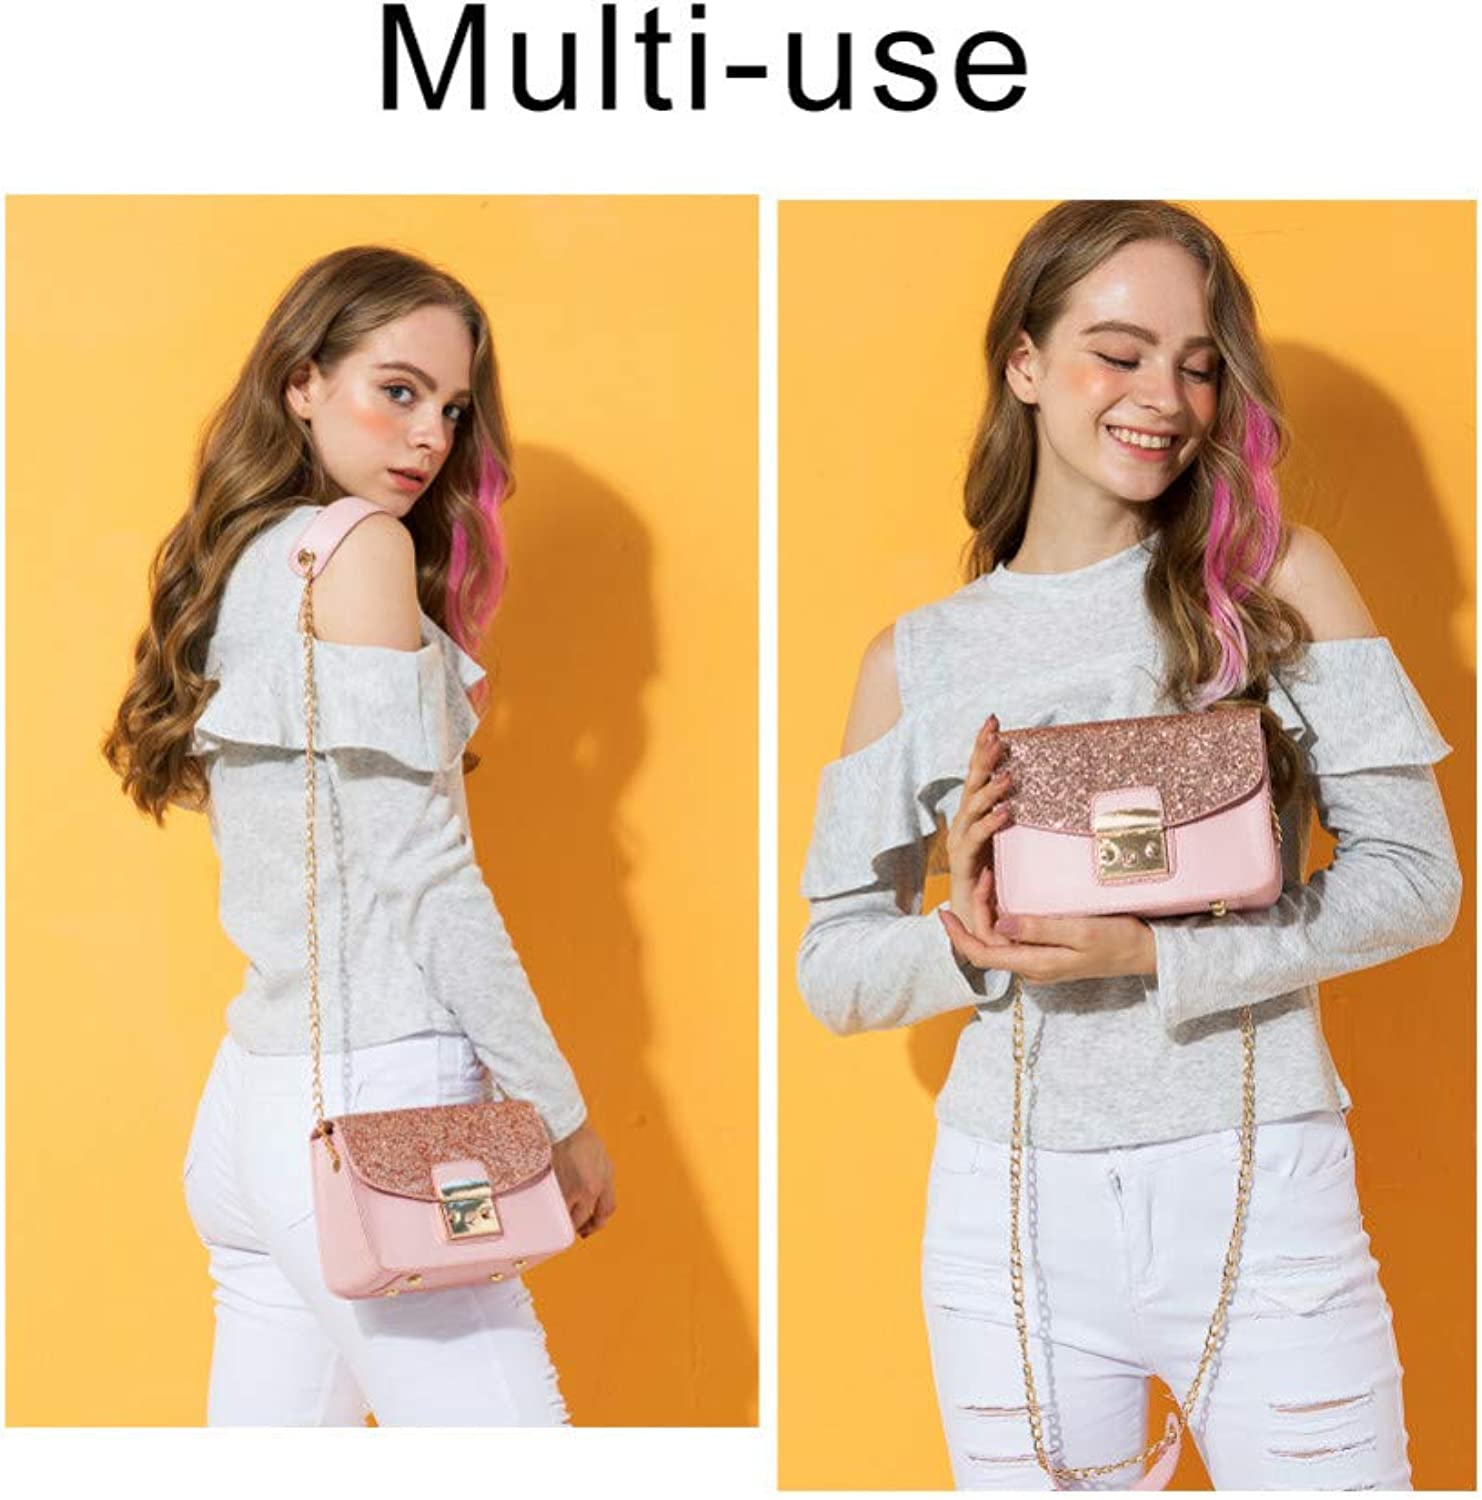 JQSM N Women Sequined Messenger Bag Quality Leather Women's Bag Chain Strap Female Shoulder Bag Lay Sbody Bags